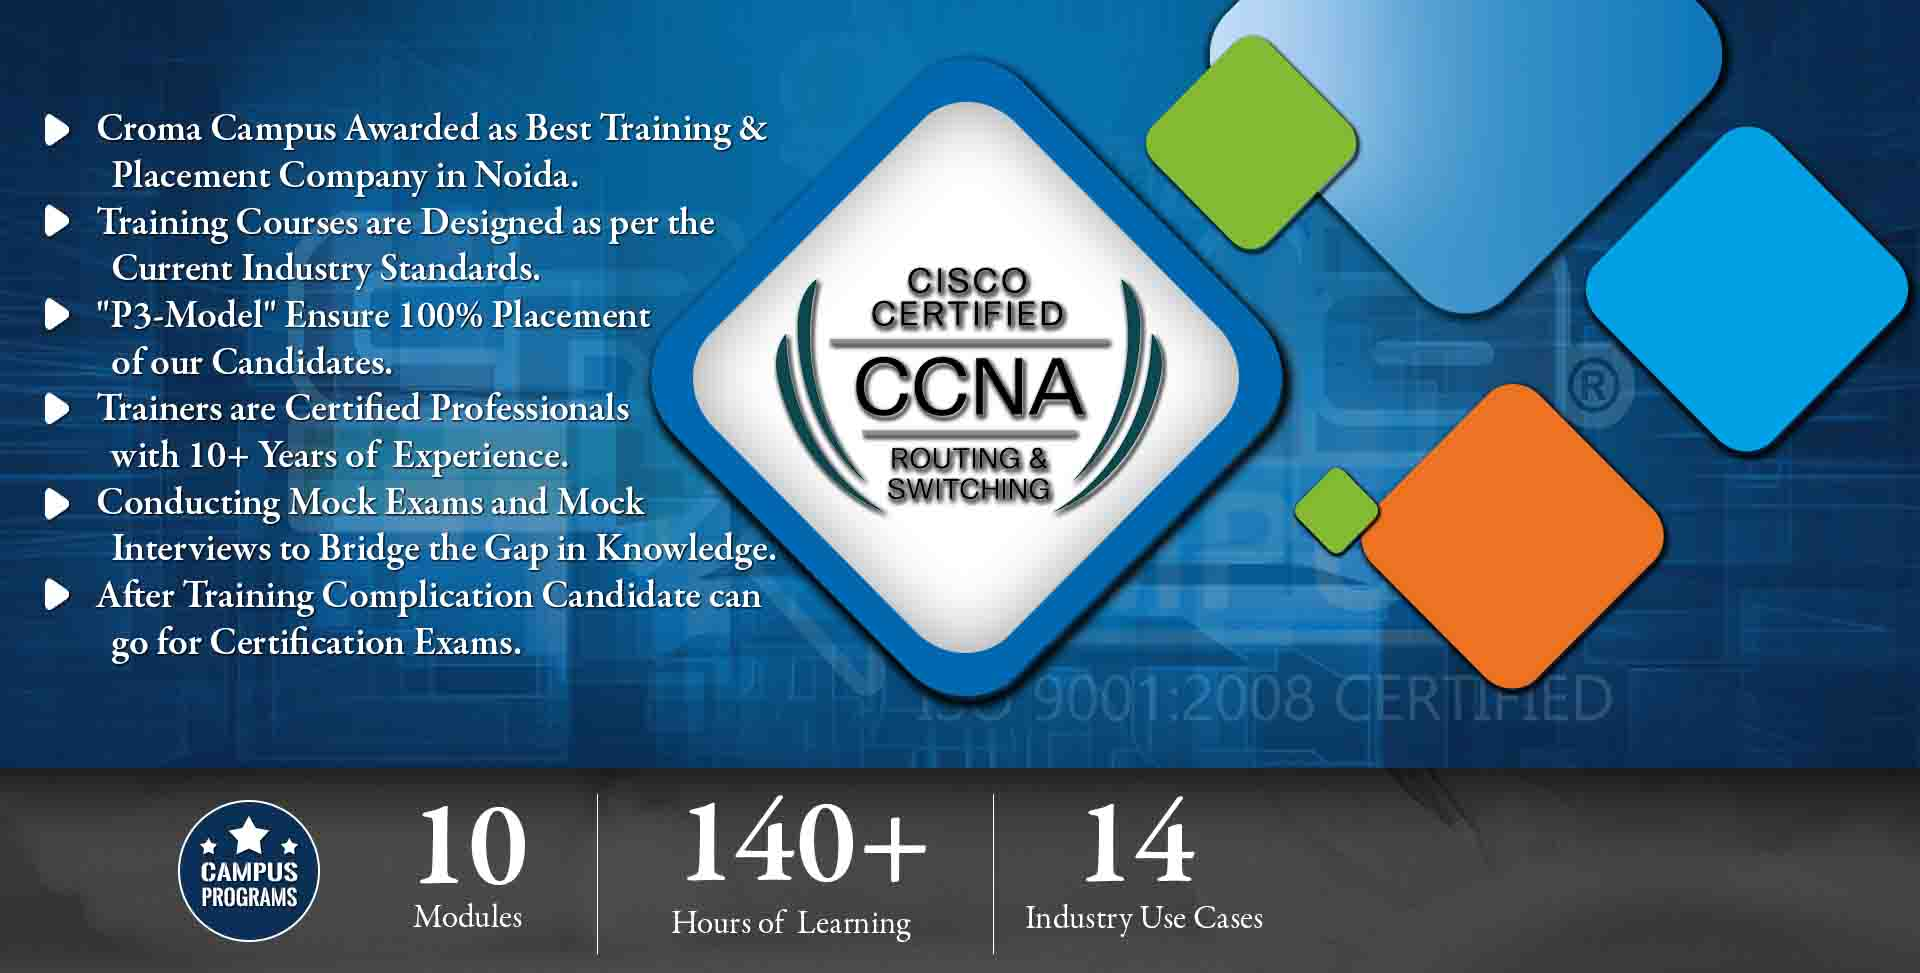 Is Delhi is good for CCNA Training